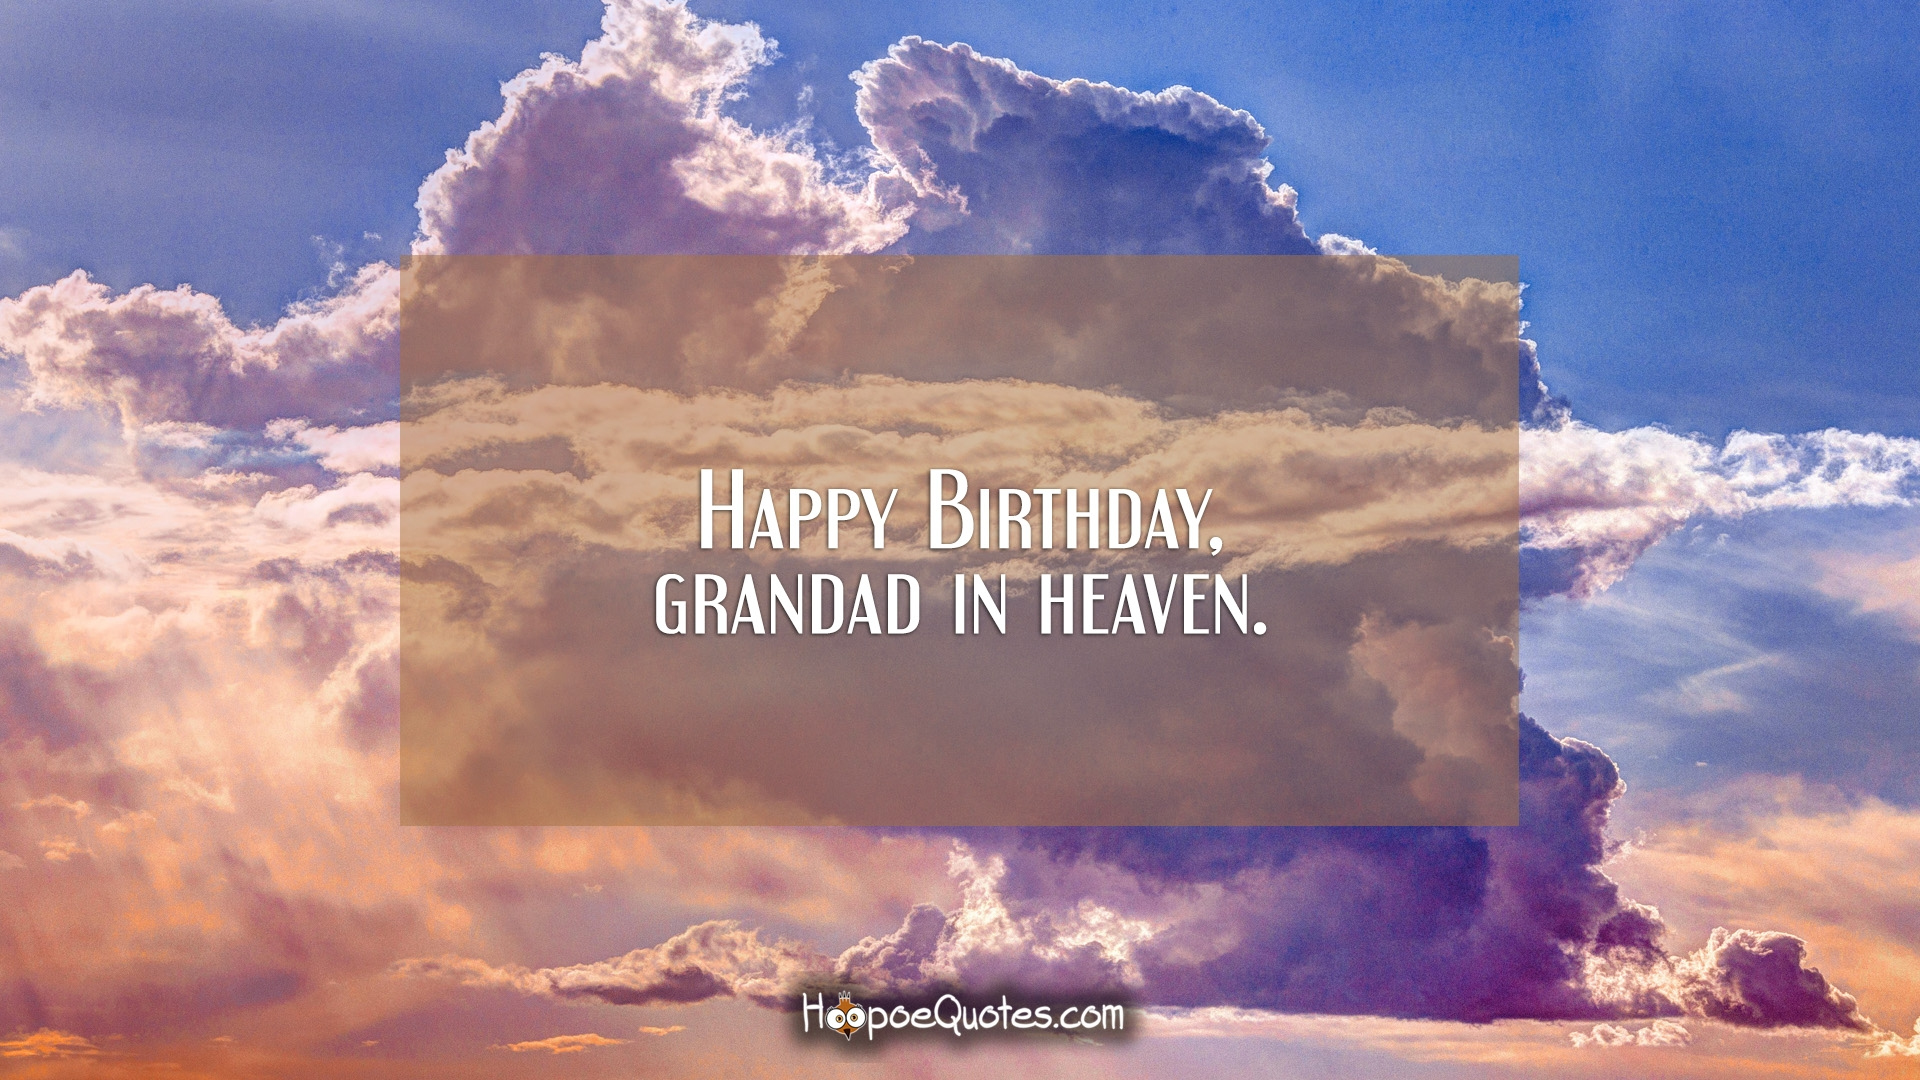 Happy Birthday Grandad In Heaven Hoopoequotes